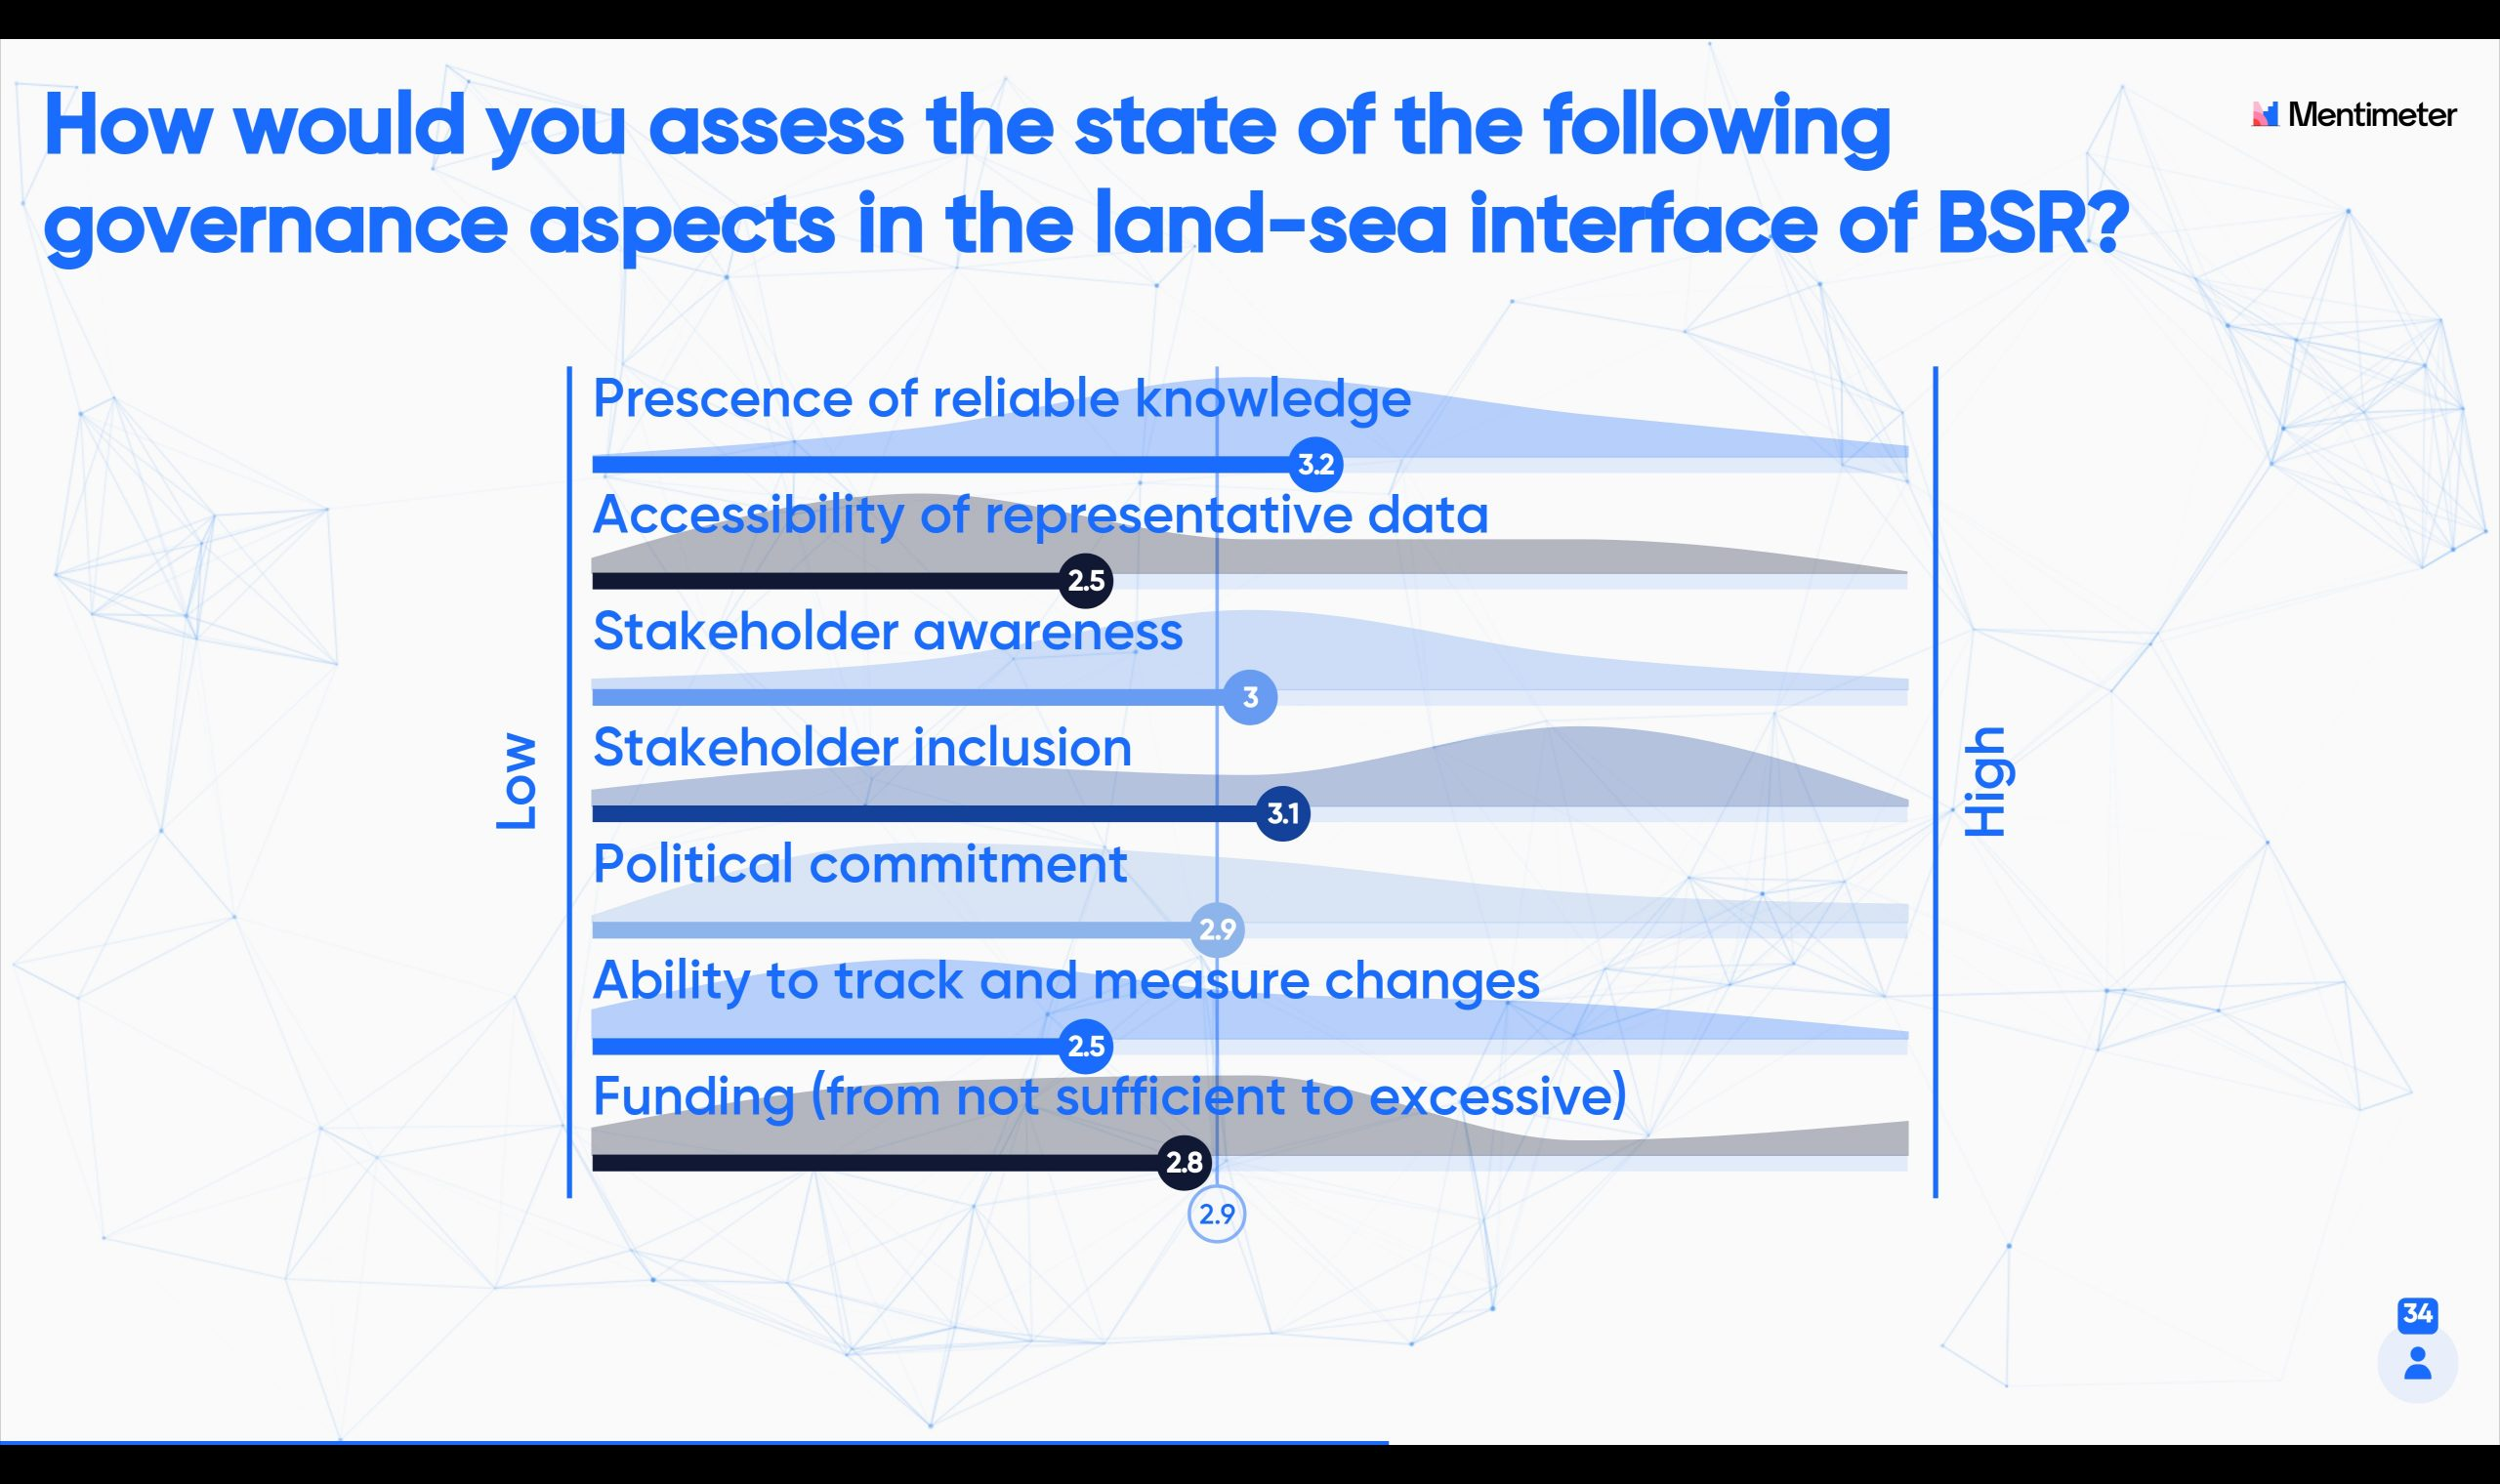 votiting results about the land-sea topic managment in Baltic sea region